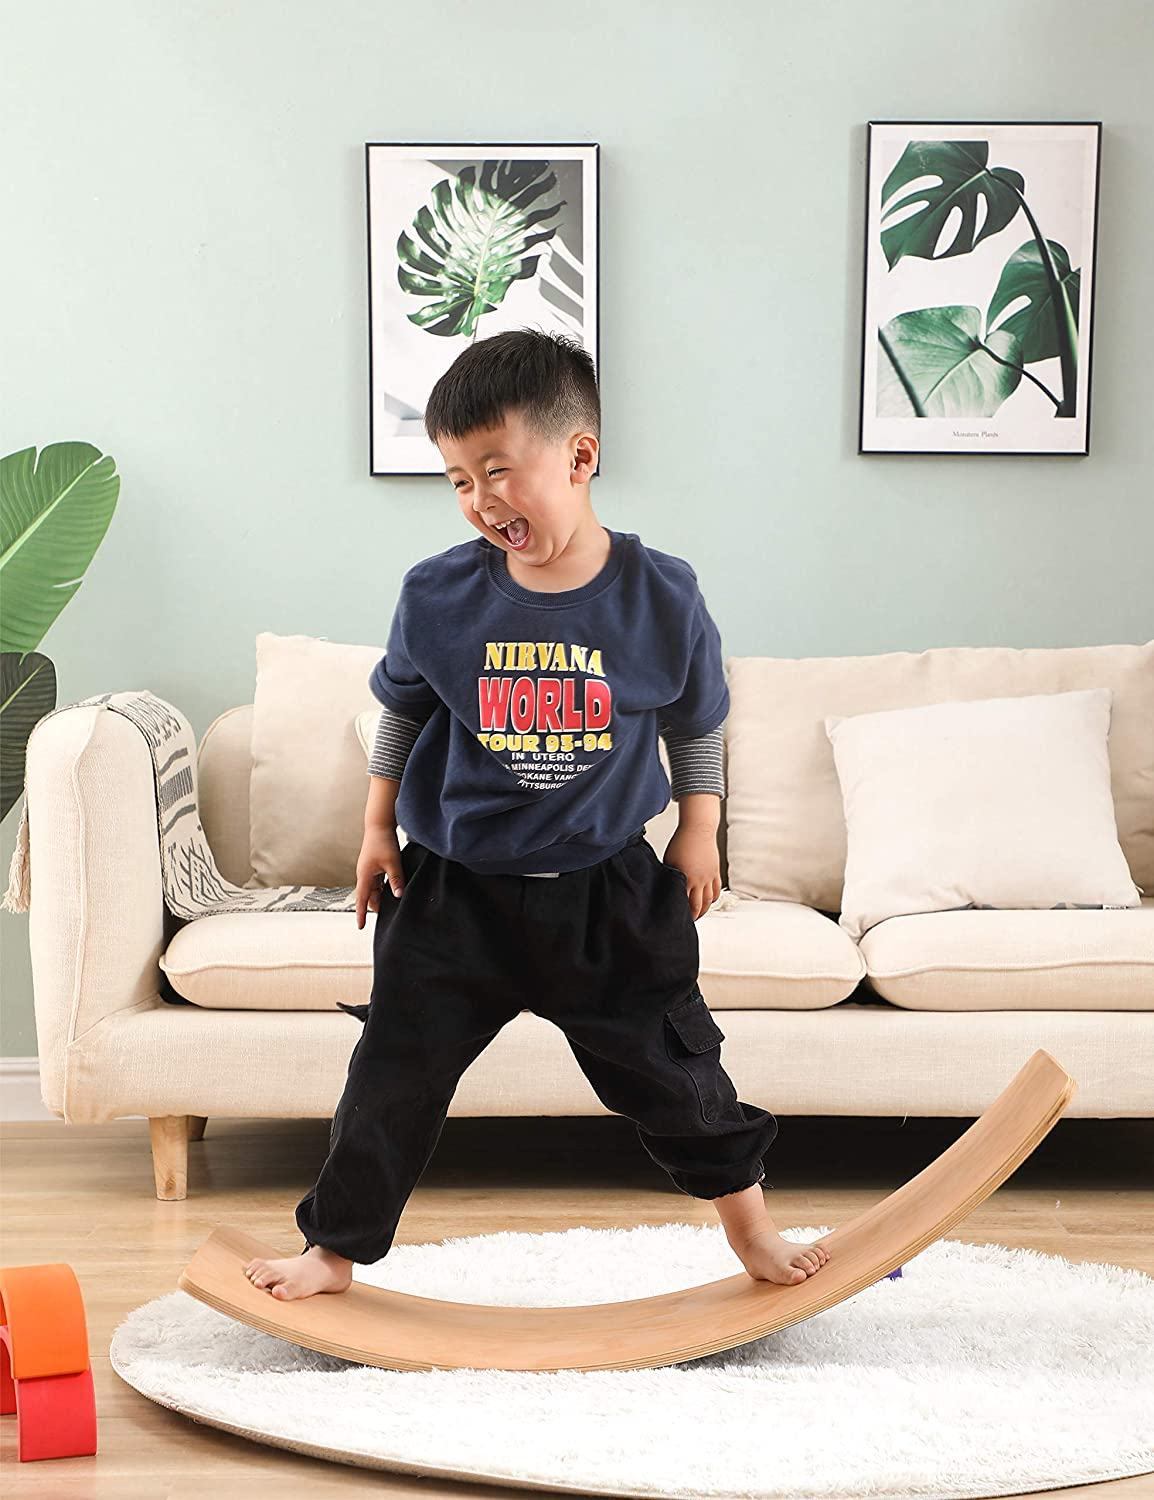 Wooden Wobble Balance Board Games Toys Sale special Popularity price Body Toddler Tr for